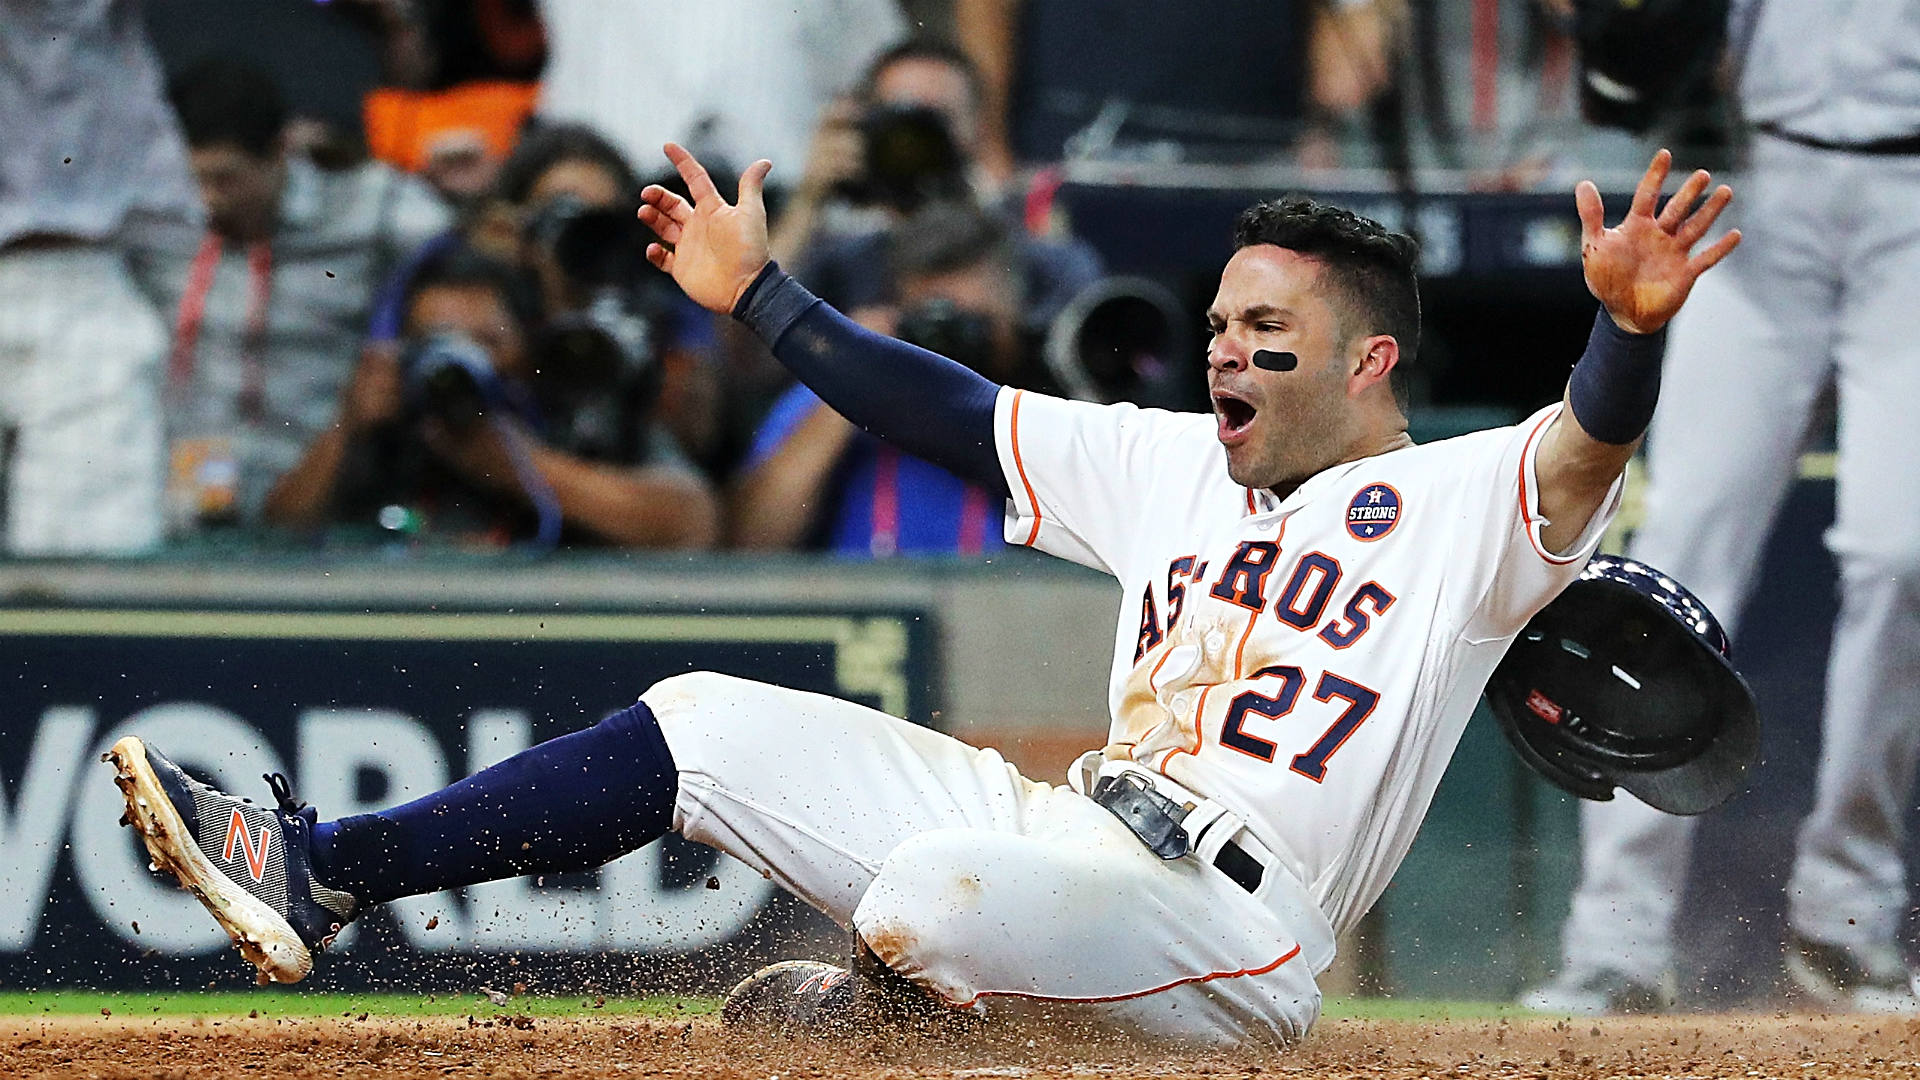 http://images.performgroup.com/di/library/sporting_news/a5/fc/josealtuve2-getty-ftr-101617jpg_kq2cq5evp9il1i8fjjih8s482.jpg?t=625760783